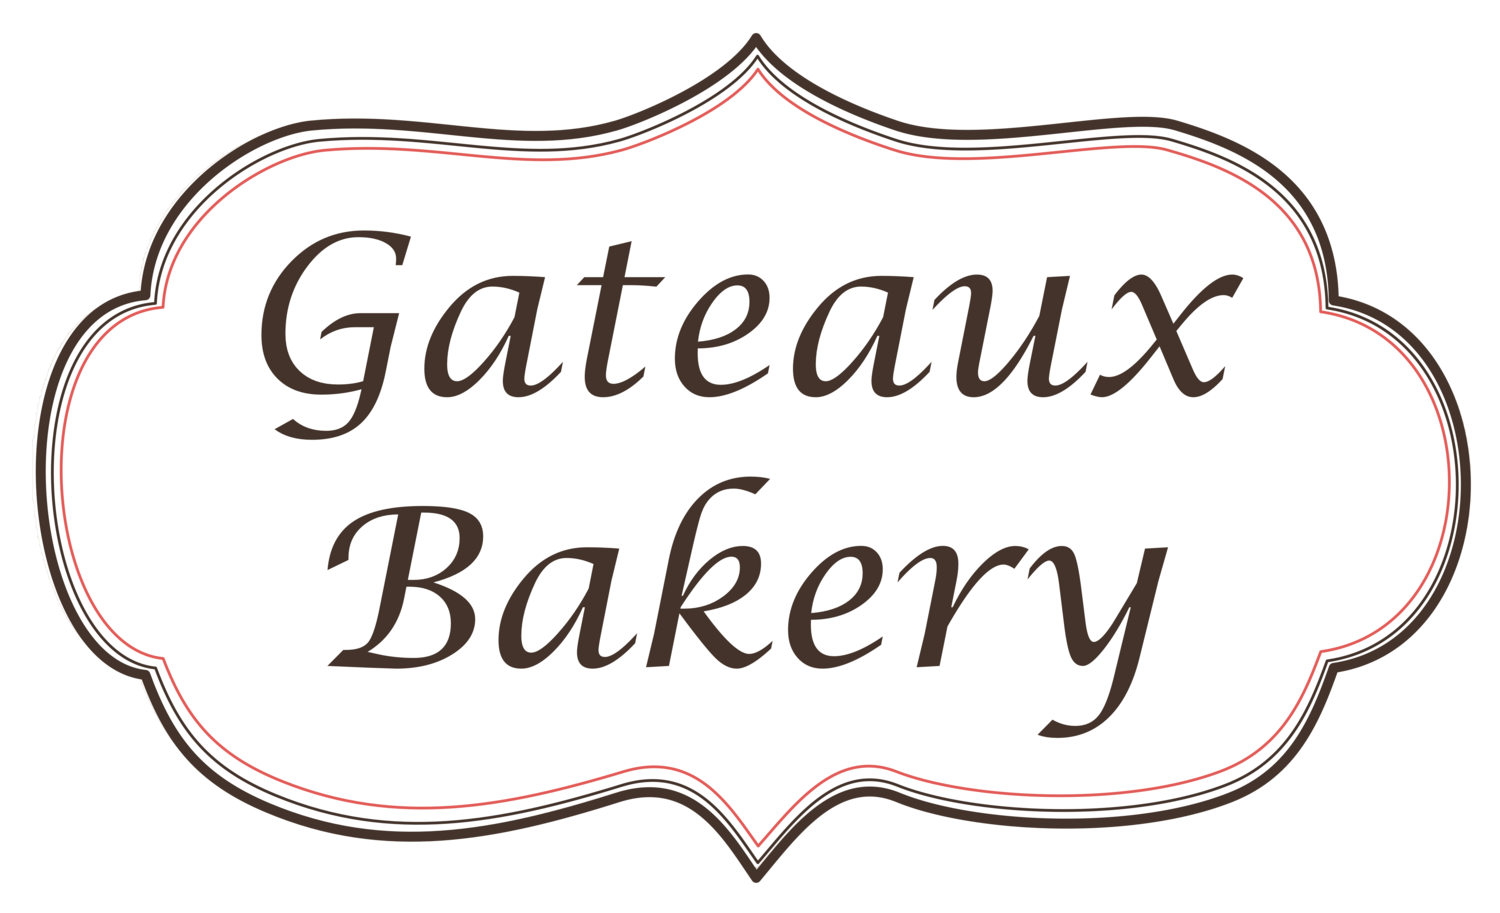 Gateaux Bakery & Cafe